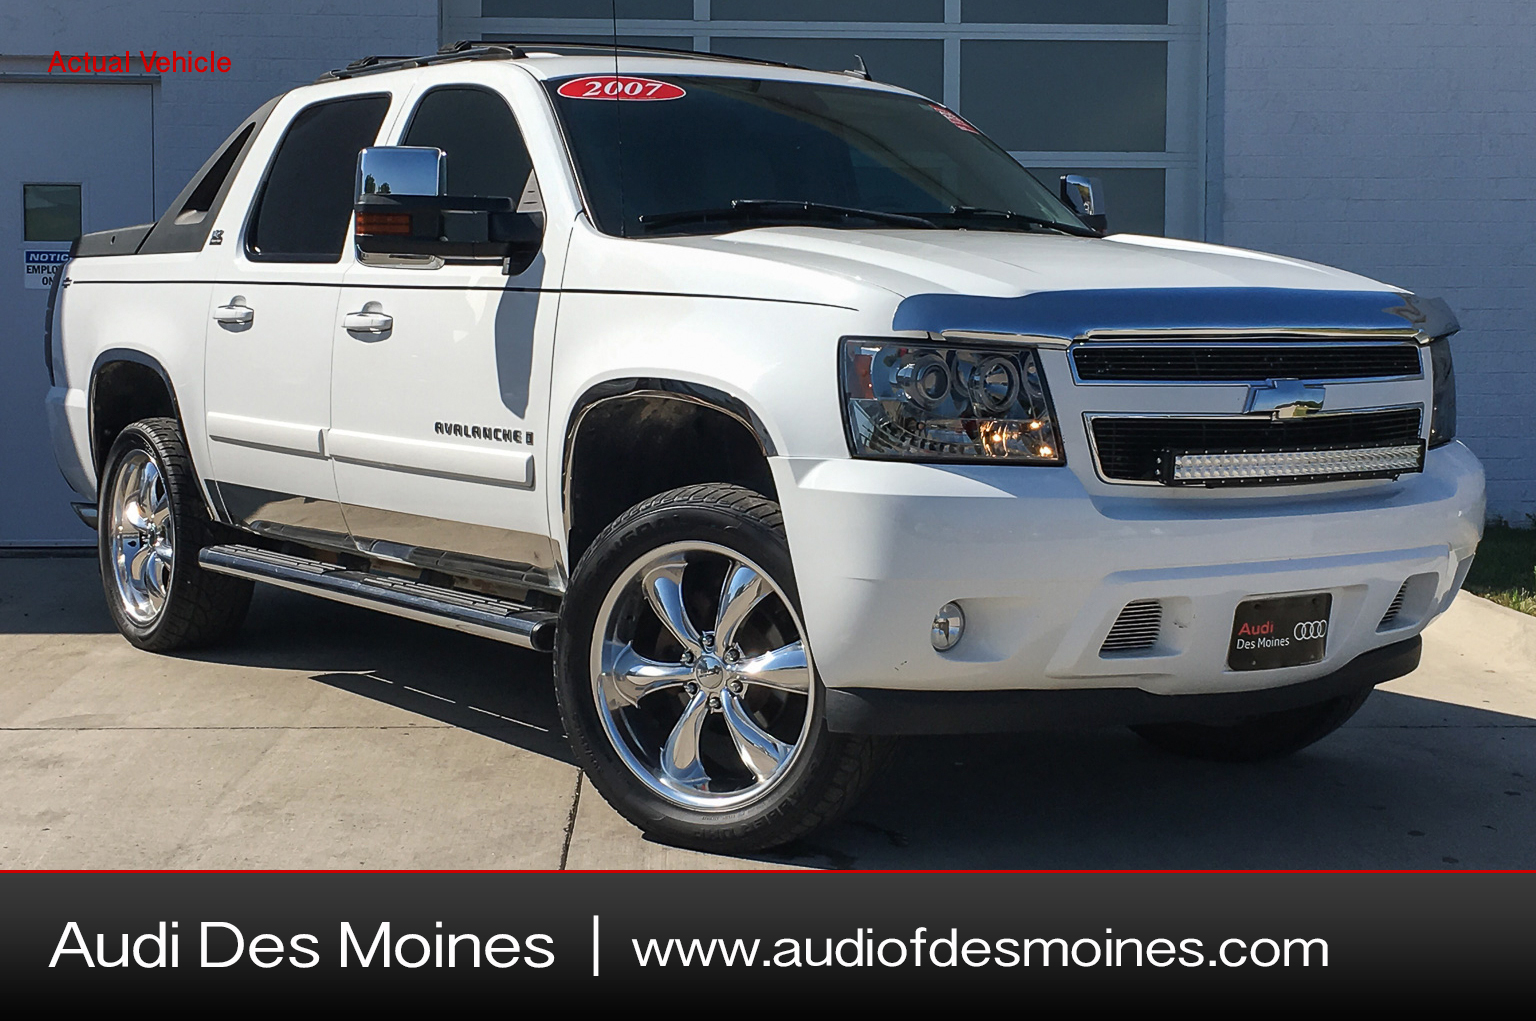 Pre-Owned 2007 Chevrolet Avalanche 1500 4WD CREW CAB 130